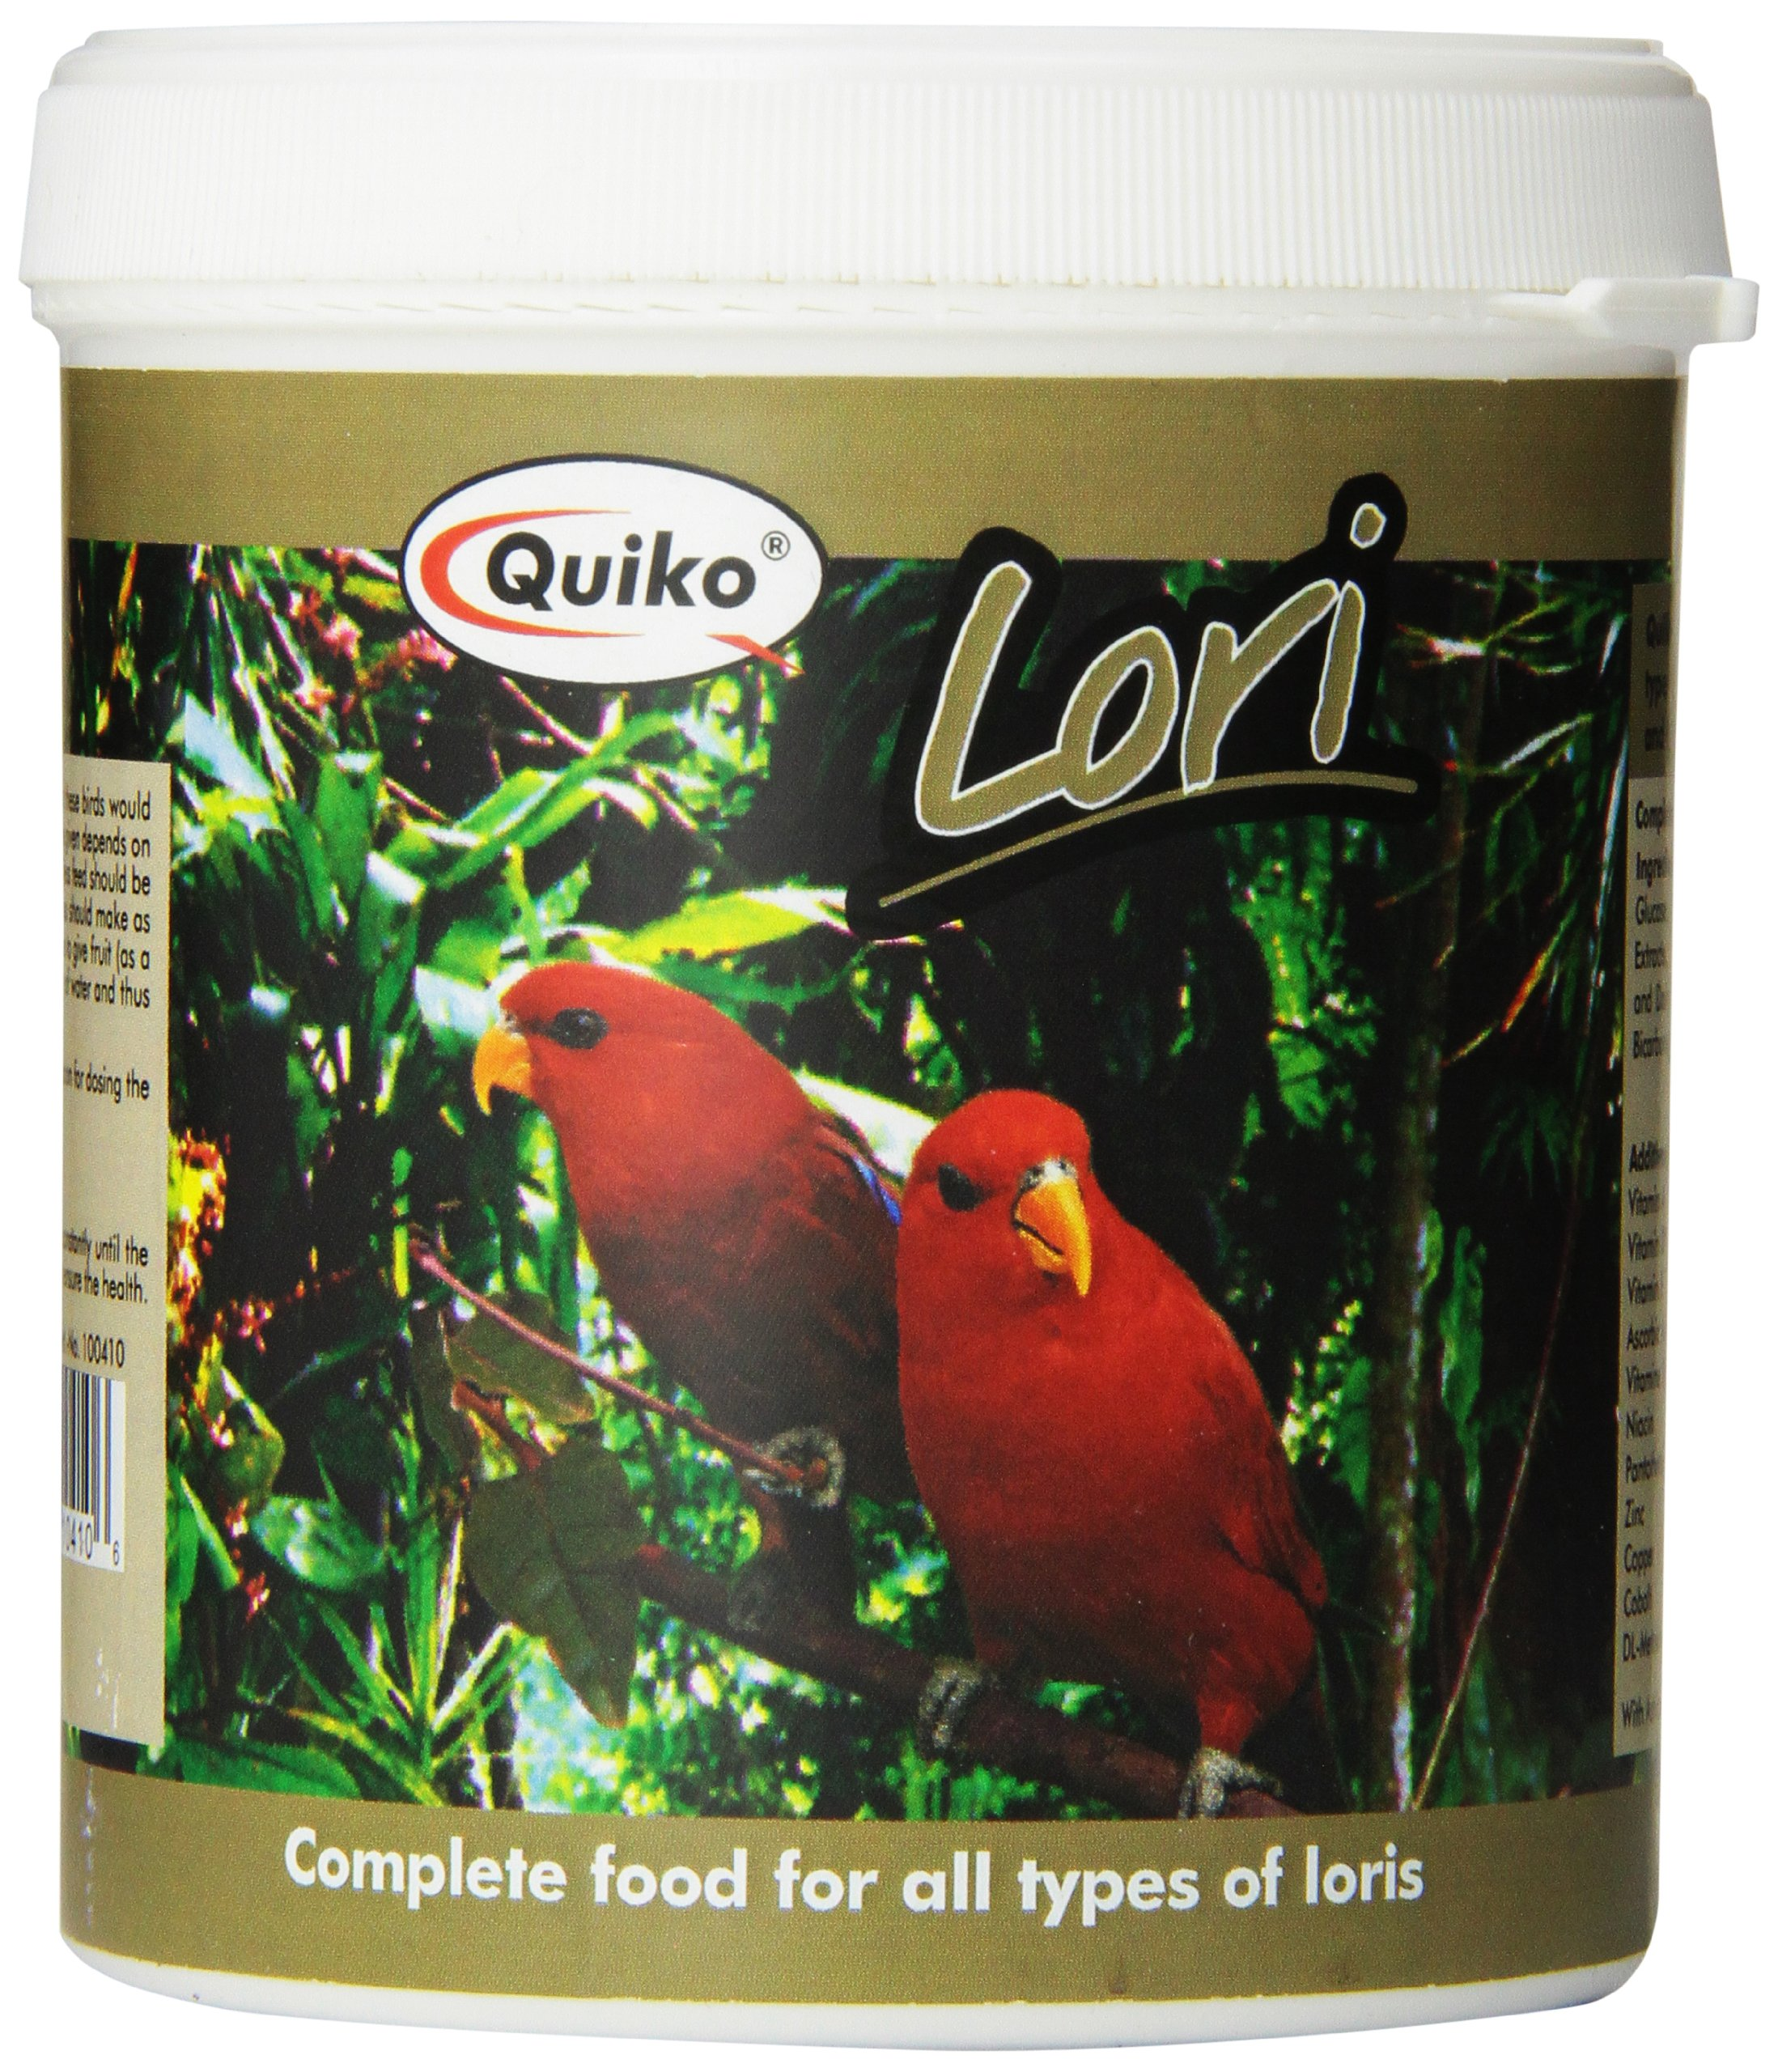 Quiko Lori - Complete Food For Nectar Eating Birds, 12.37 Ounce Recloseable Container by Quiko